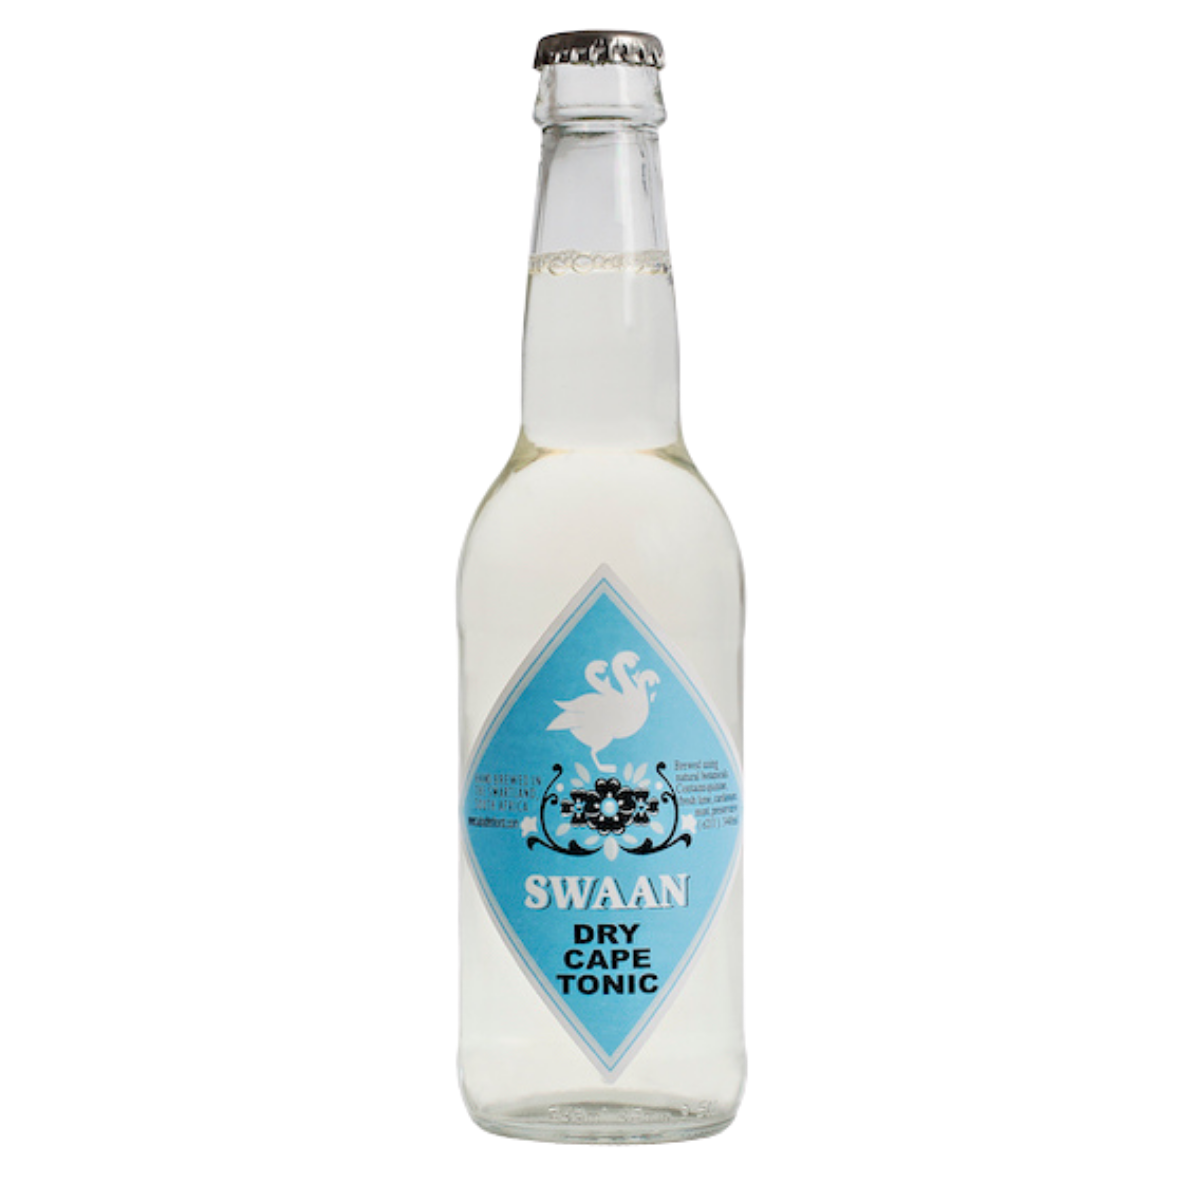 Swaan Dry Cape Tonic (6 x 200ml)